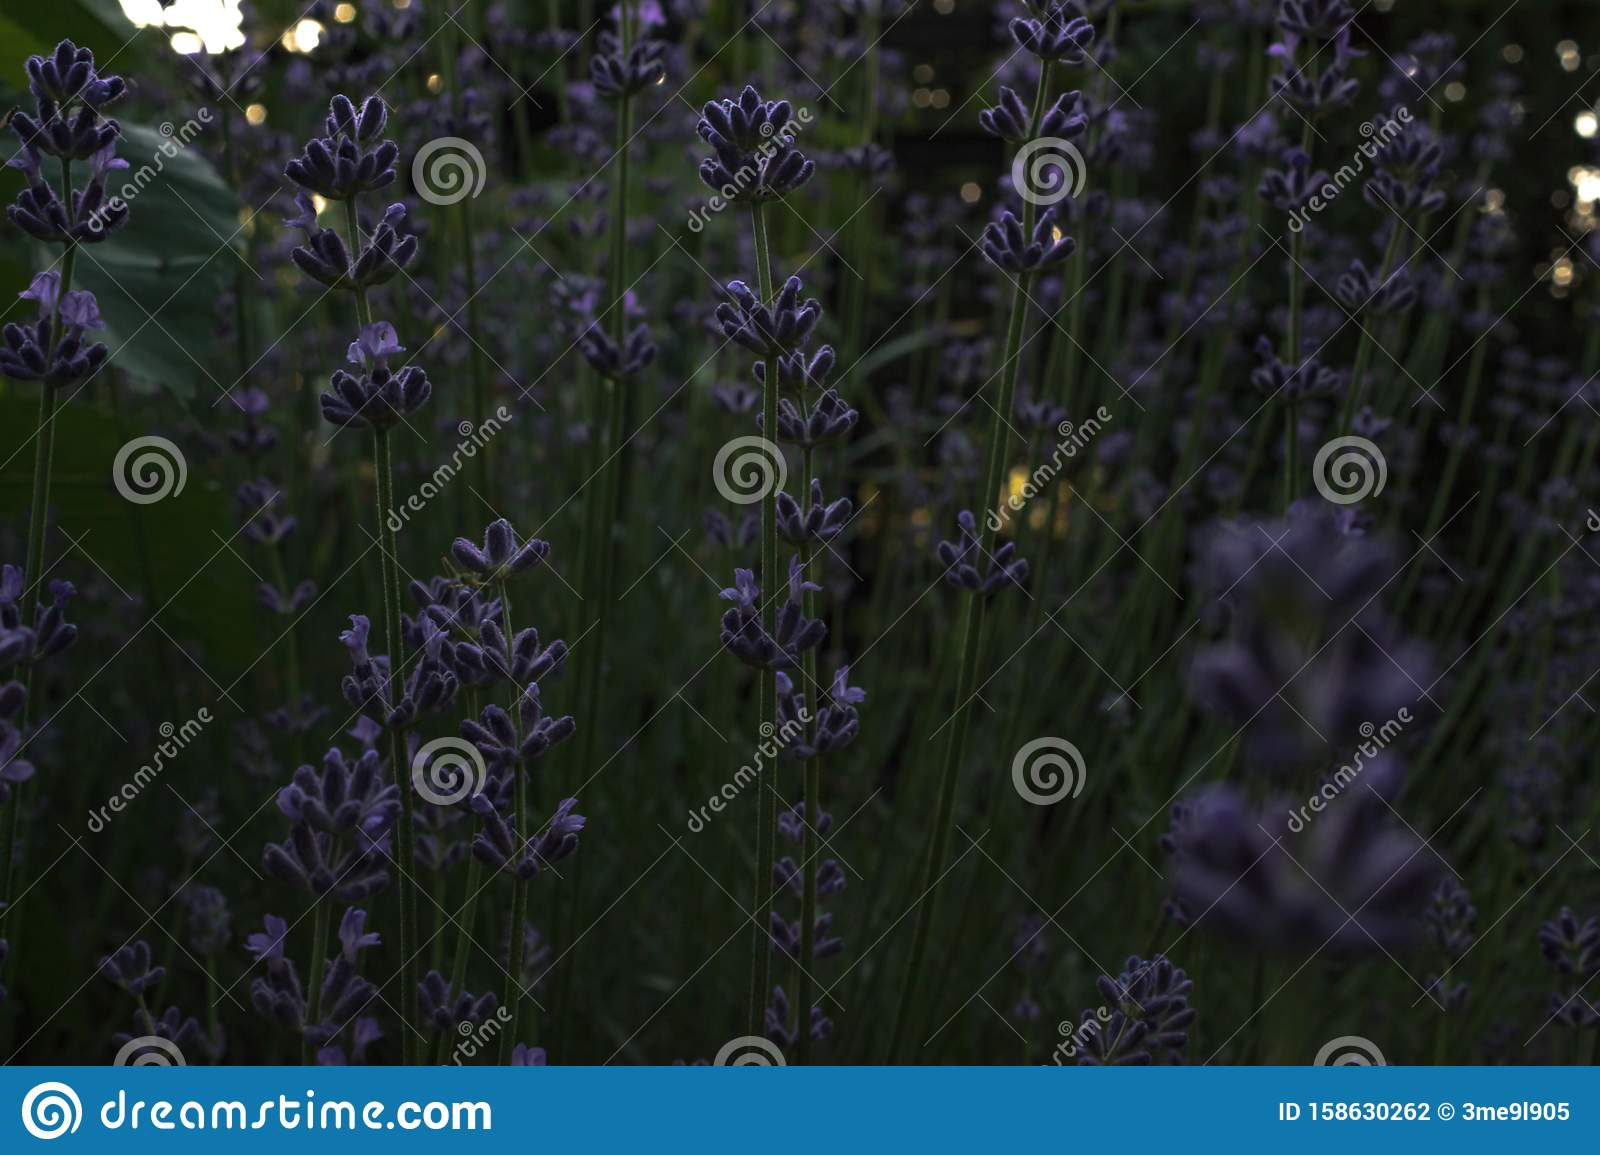 A Bush Of Fragrant Lavender Blossoms Against The Background Of A